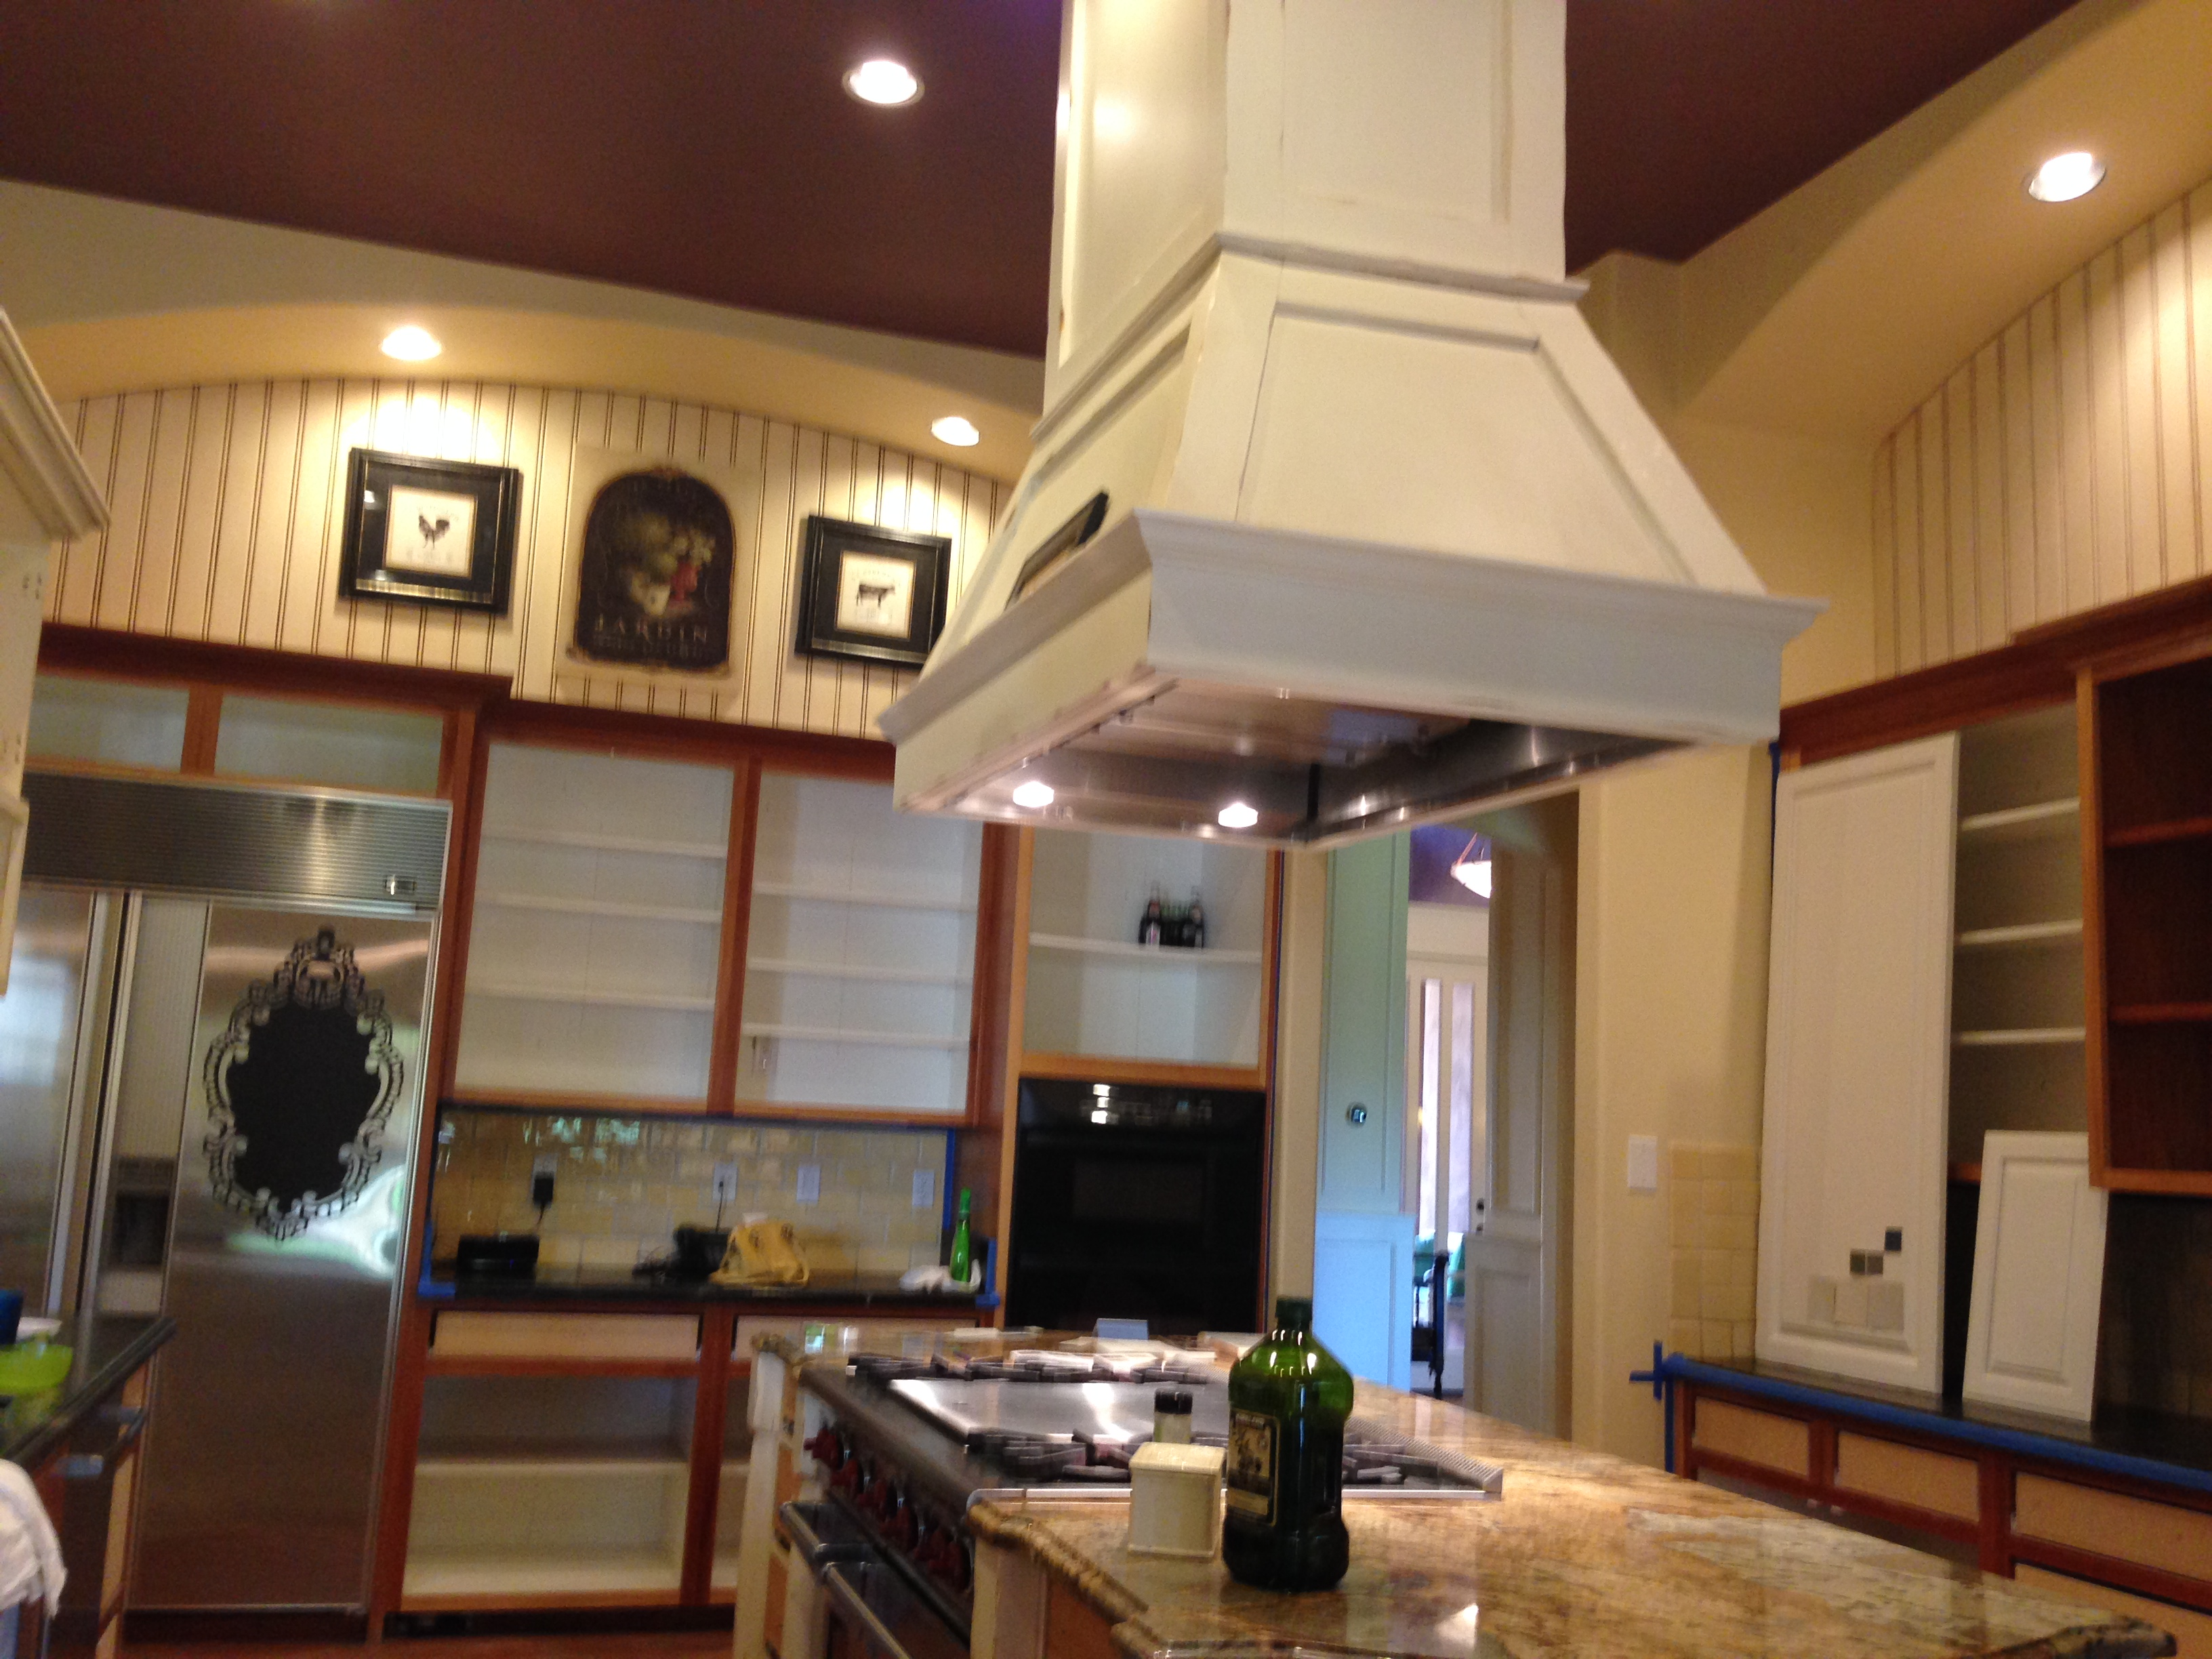 Another Peek Inside The Big House Food And Family